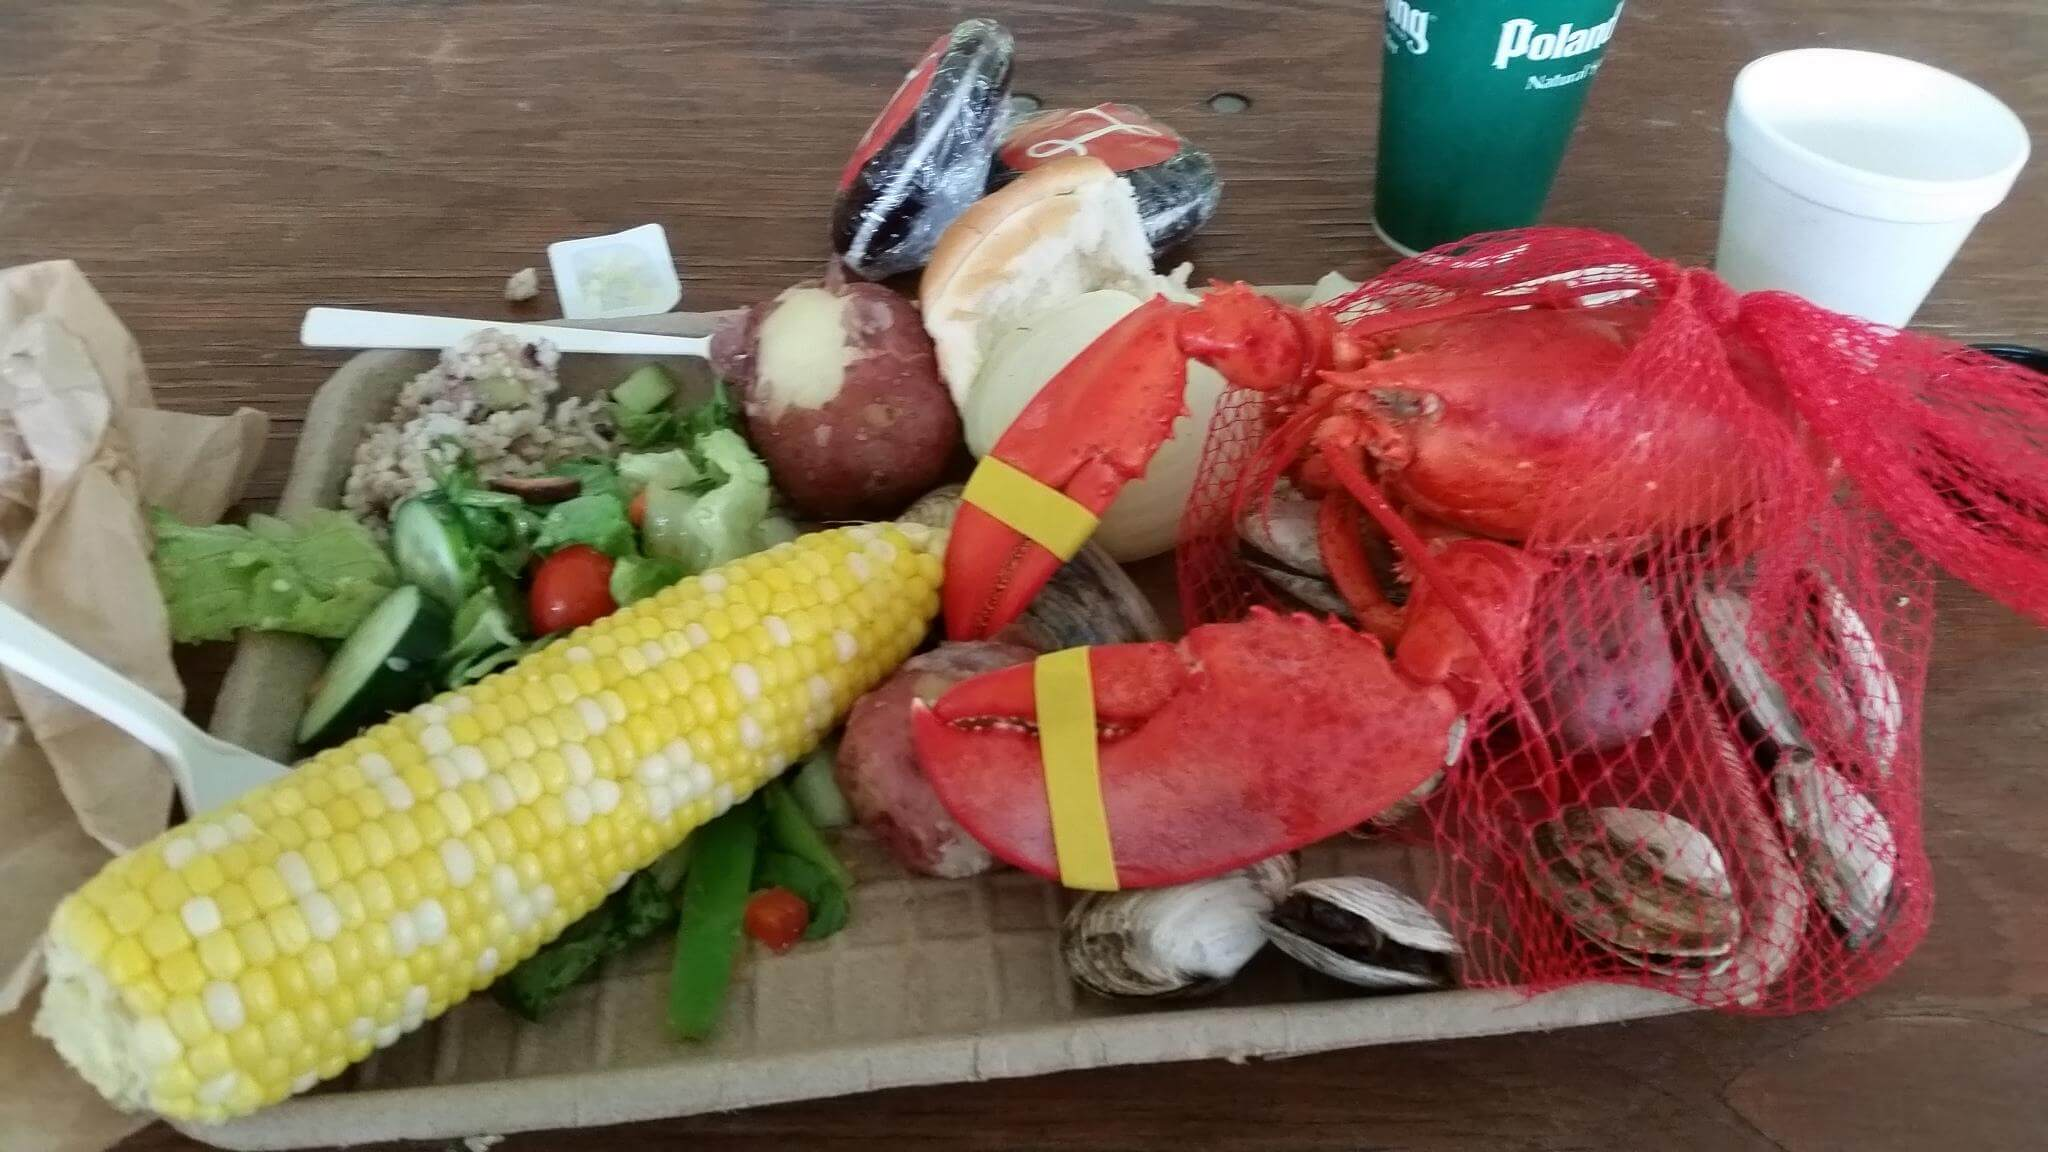 Lobster bake on Saturday night before the ride began